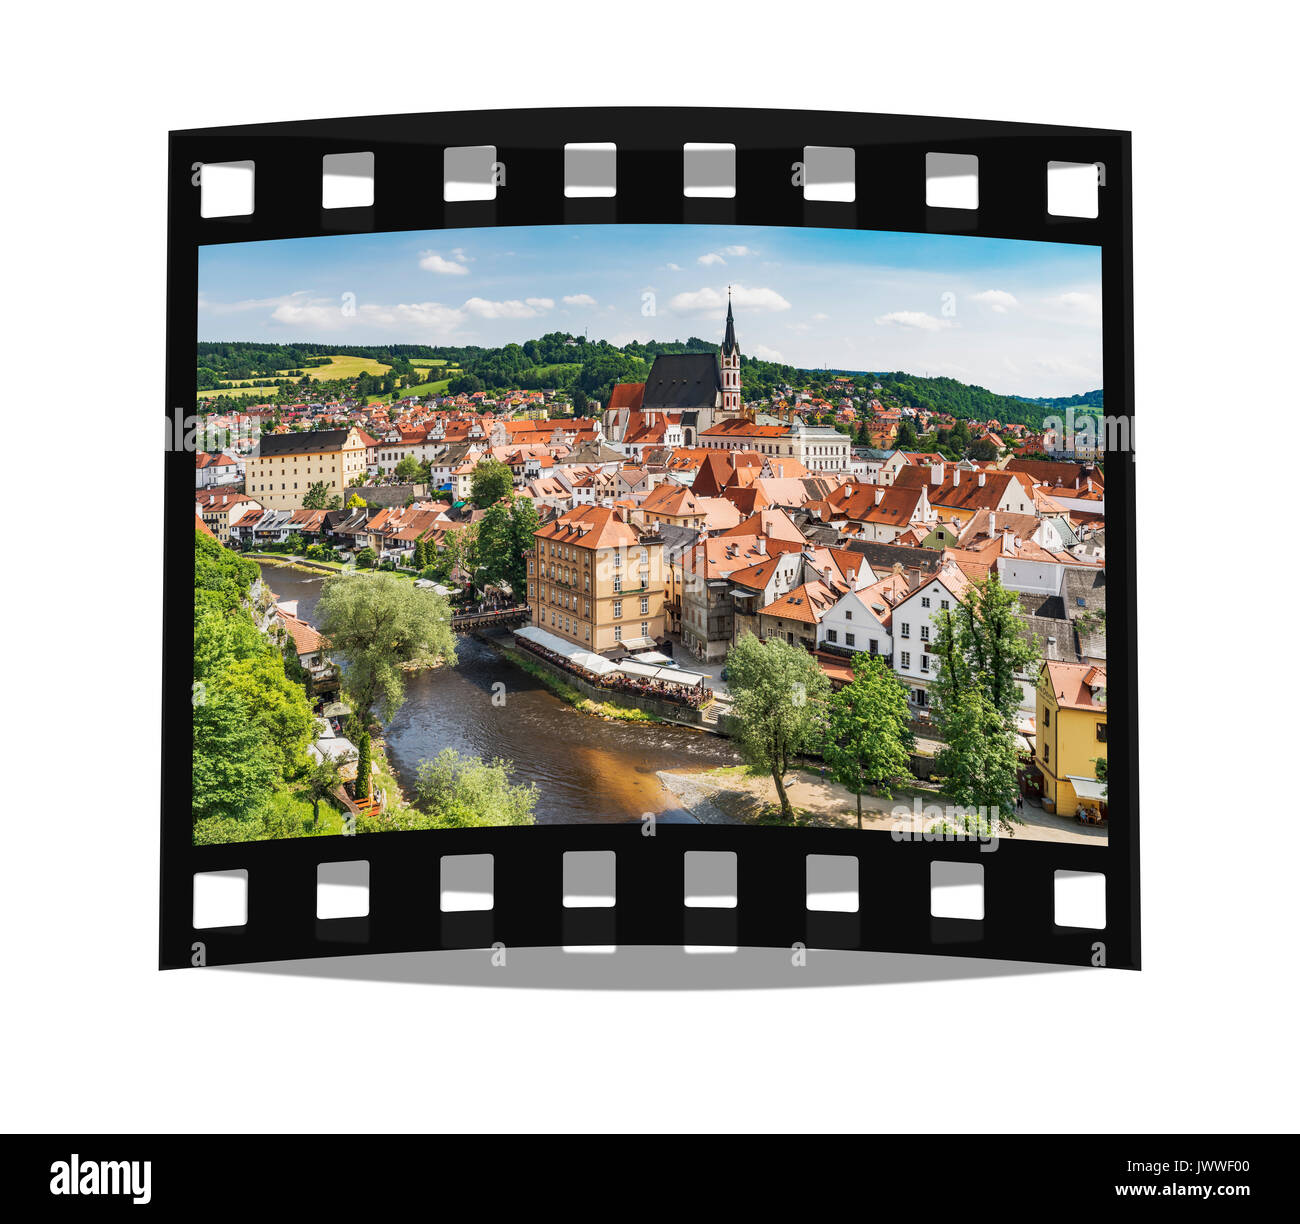 View of the old town of Chesky Krumlov, the St. Vitus Church and the River Vltava in Bohemia, Jihocesky Kraj, Czech Republic, Europe - Stock Image